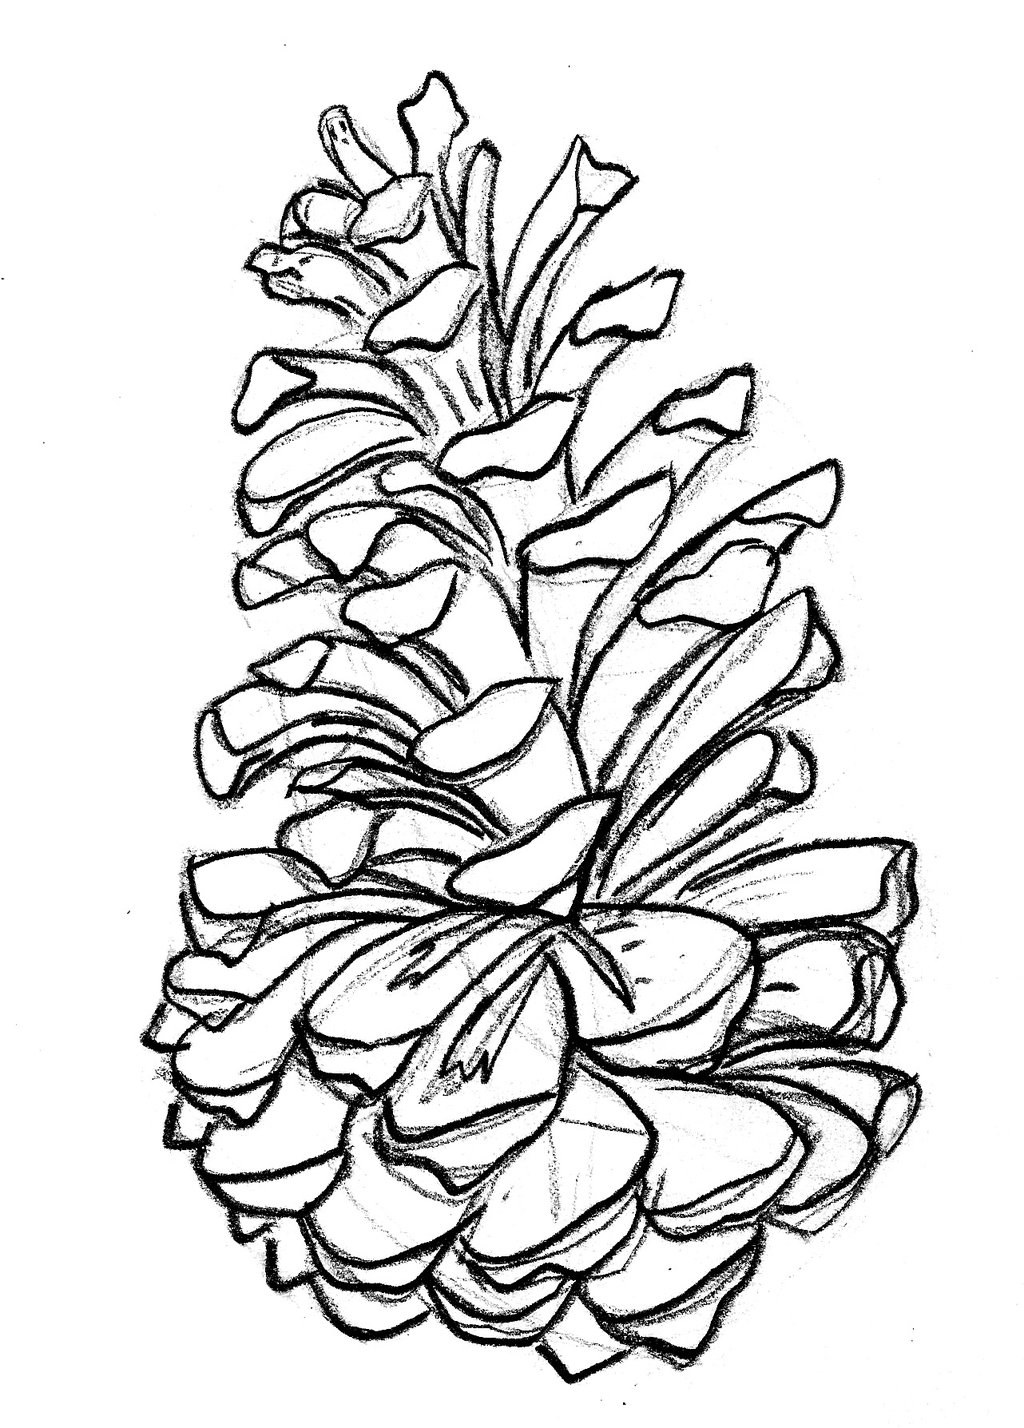 Pinecone clipart eastern white pine. Drawing at getdrawings com